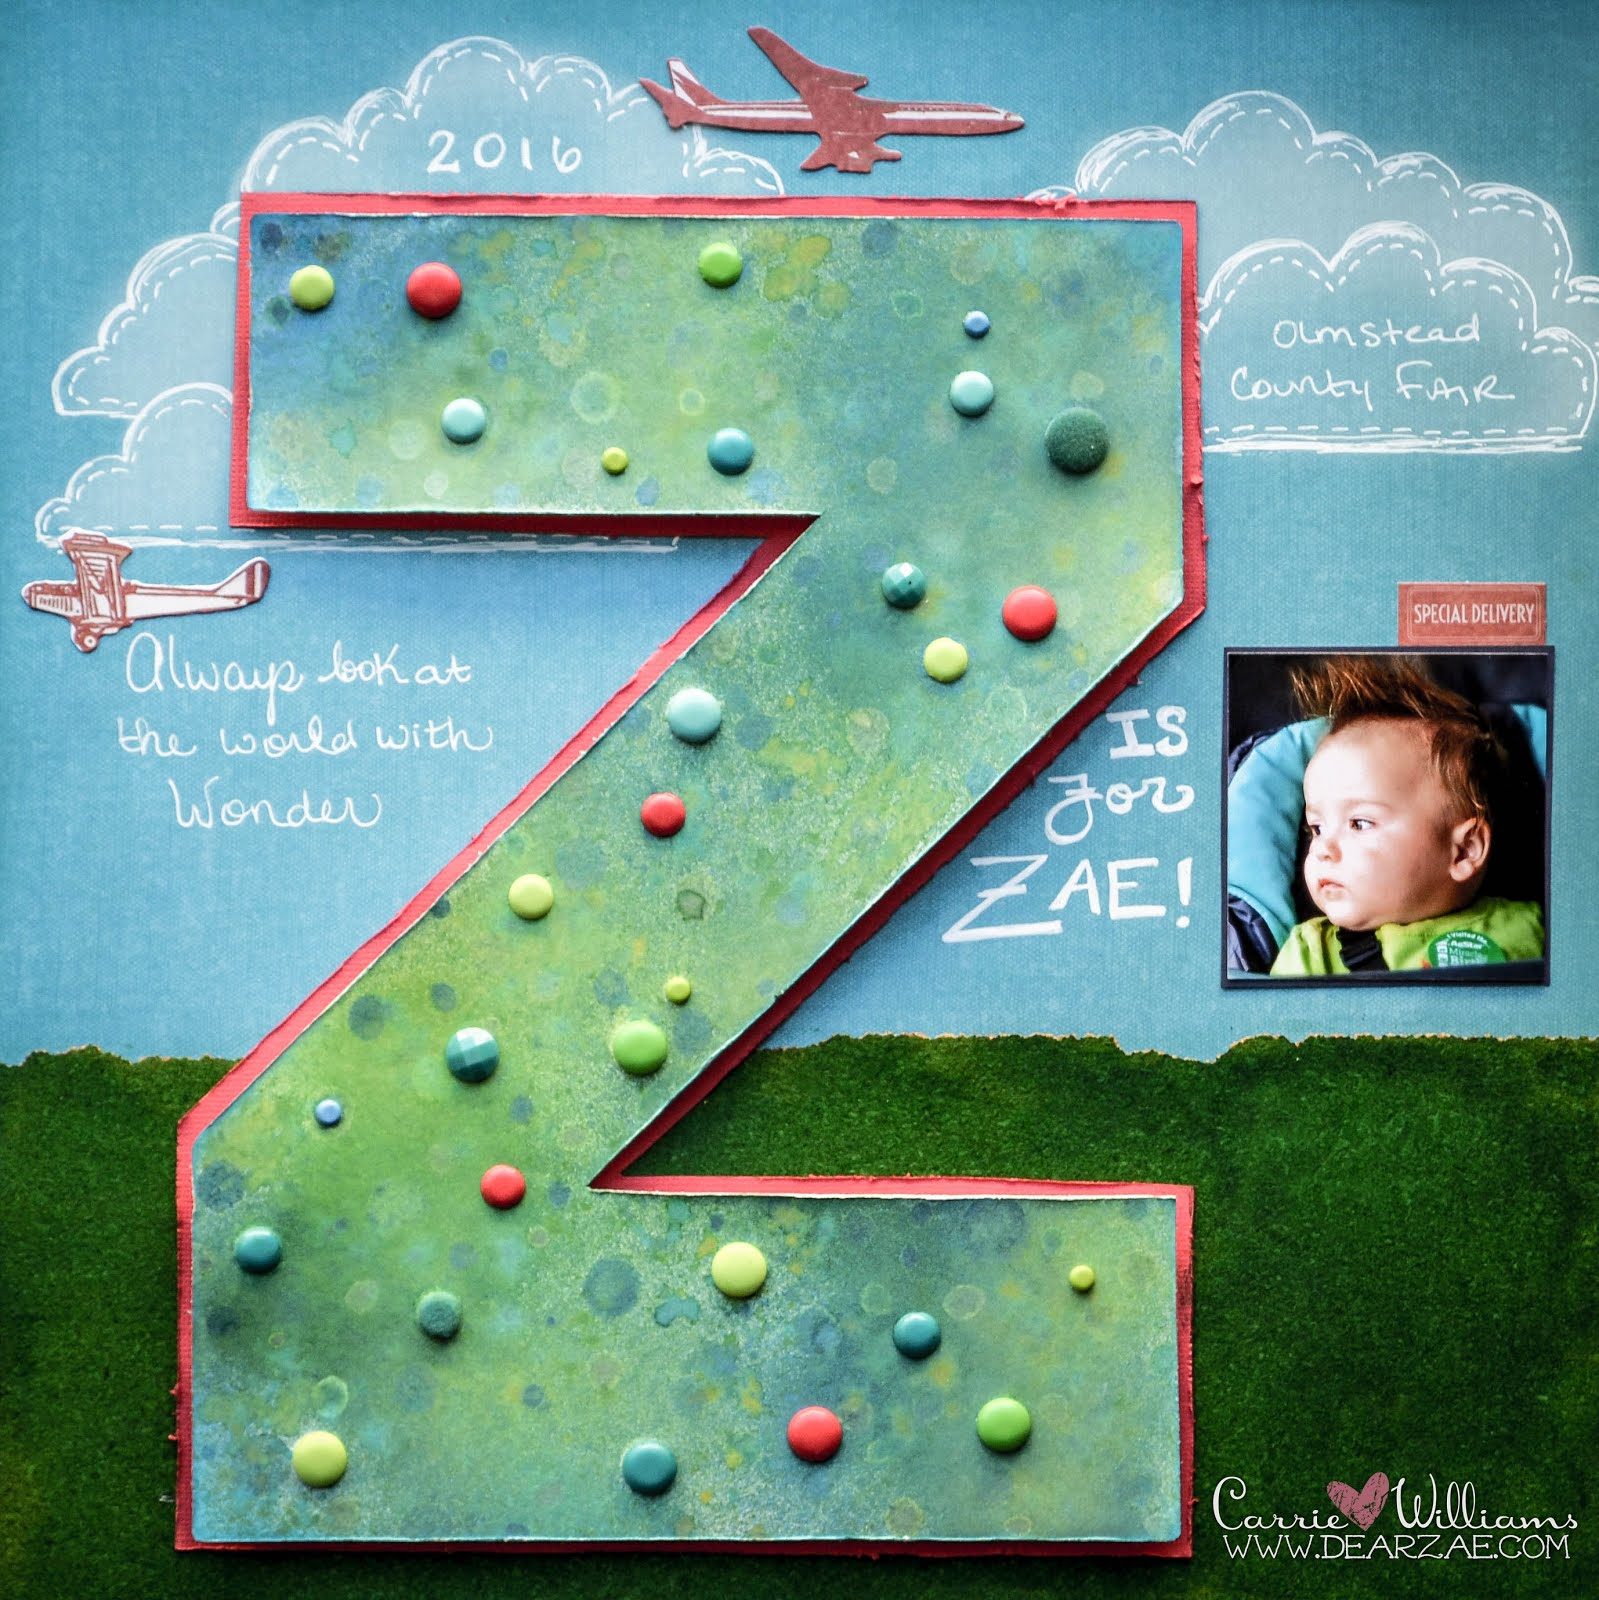 Boy scrapbooking page layout with large watercolor letter Z decorated with brads against blue sky background and cork grass and airplanes and hand drawn clouds